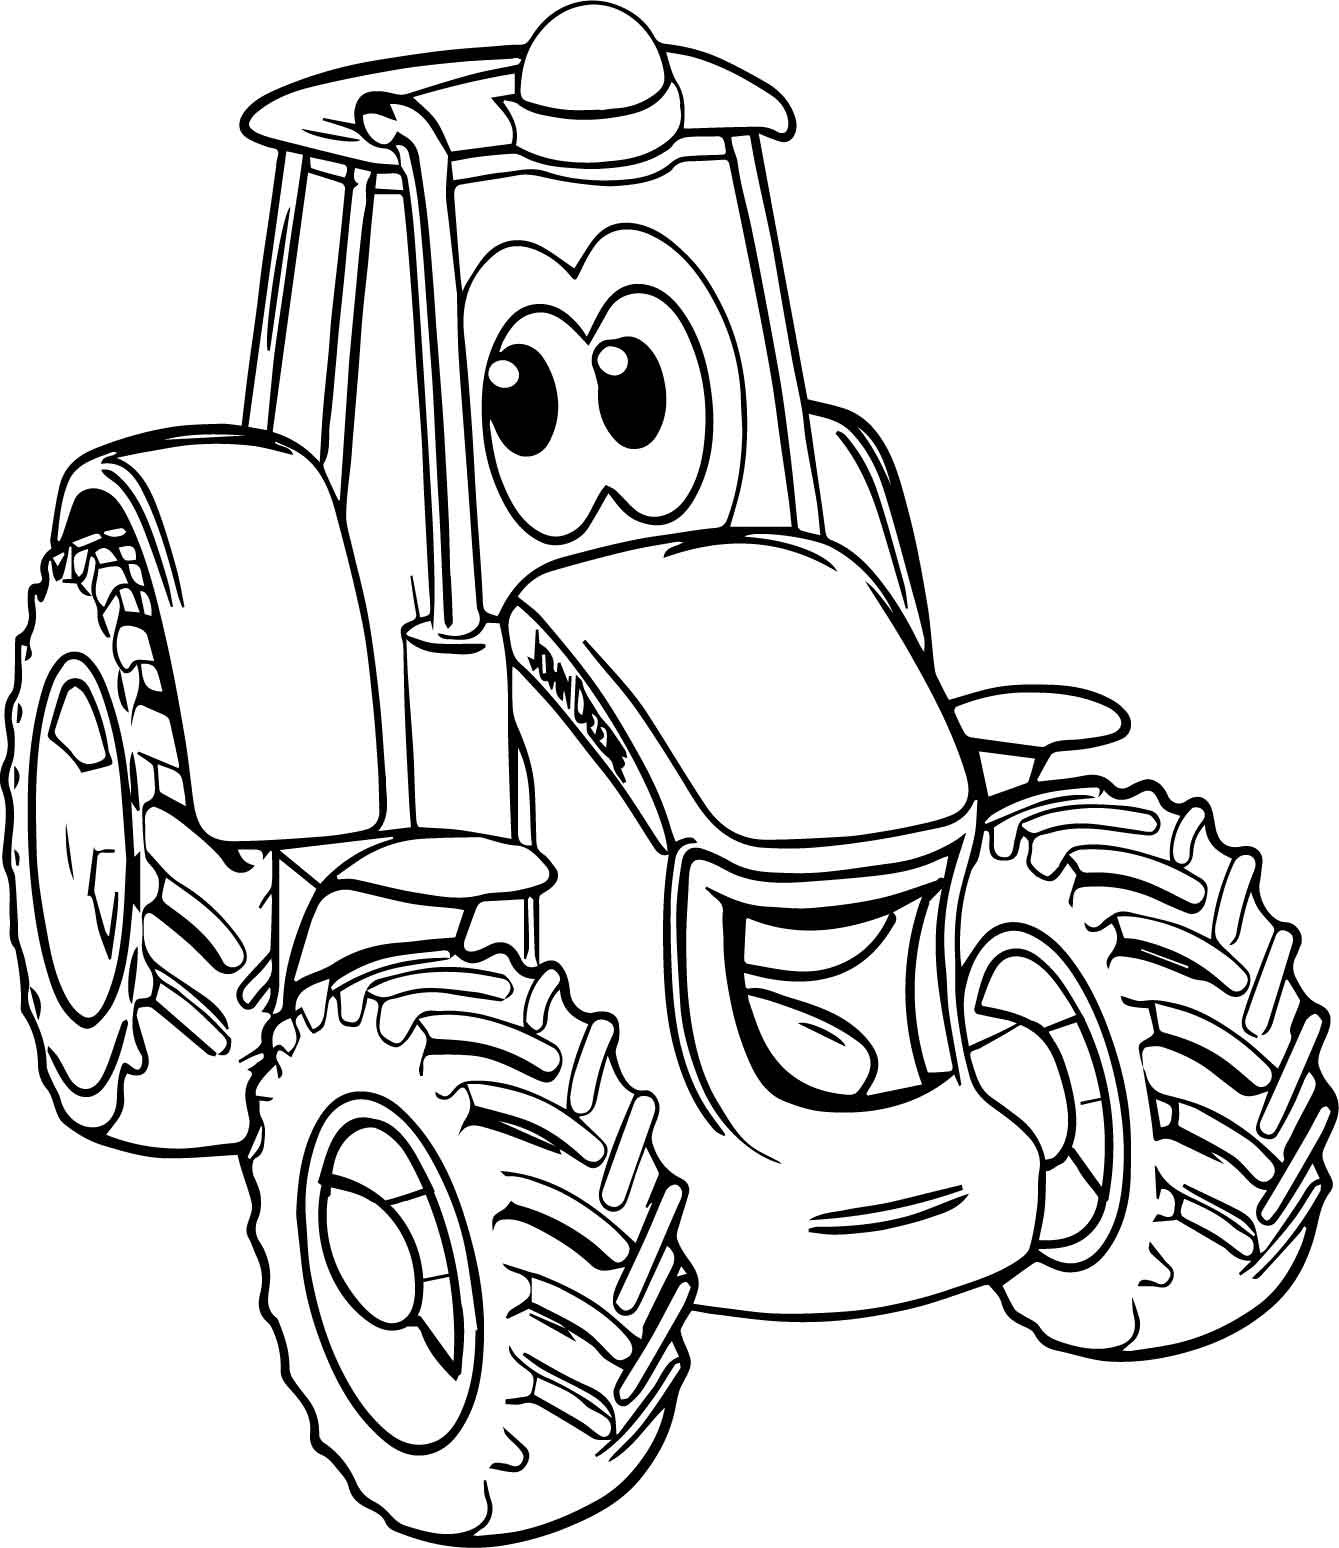 Farmall Tractor Coloring Pages At Getcolorings